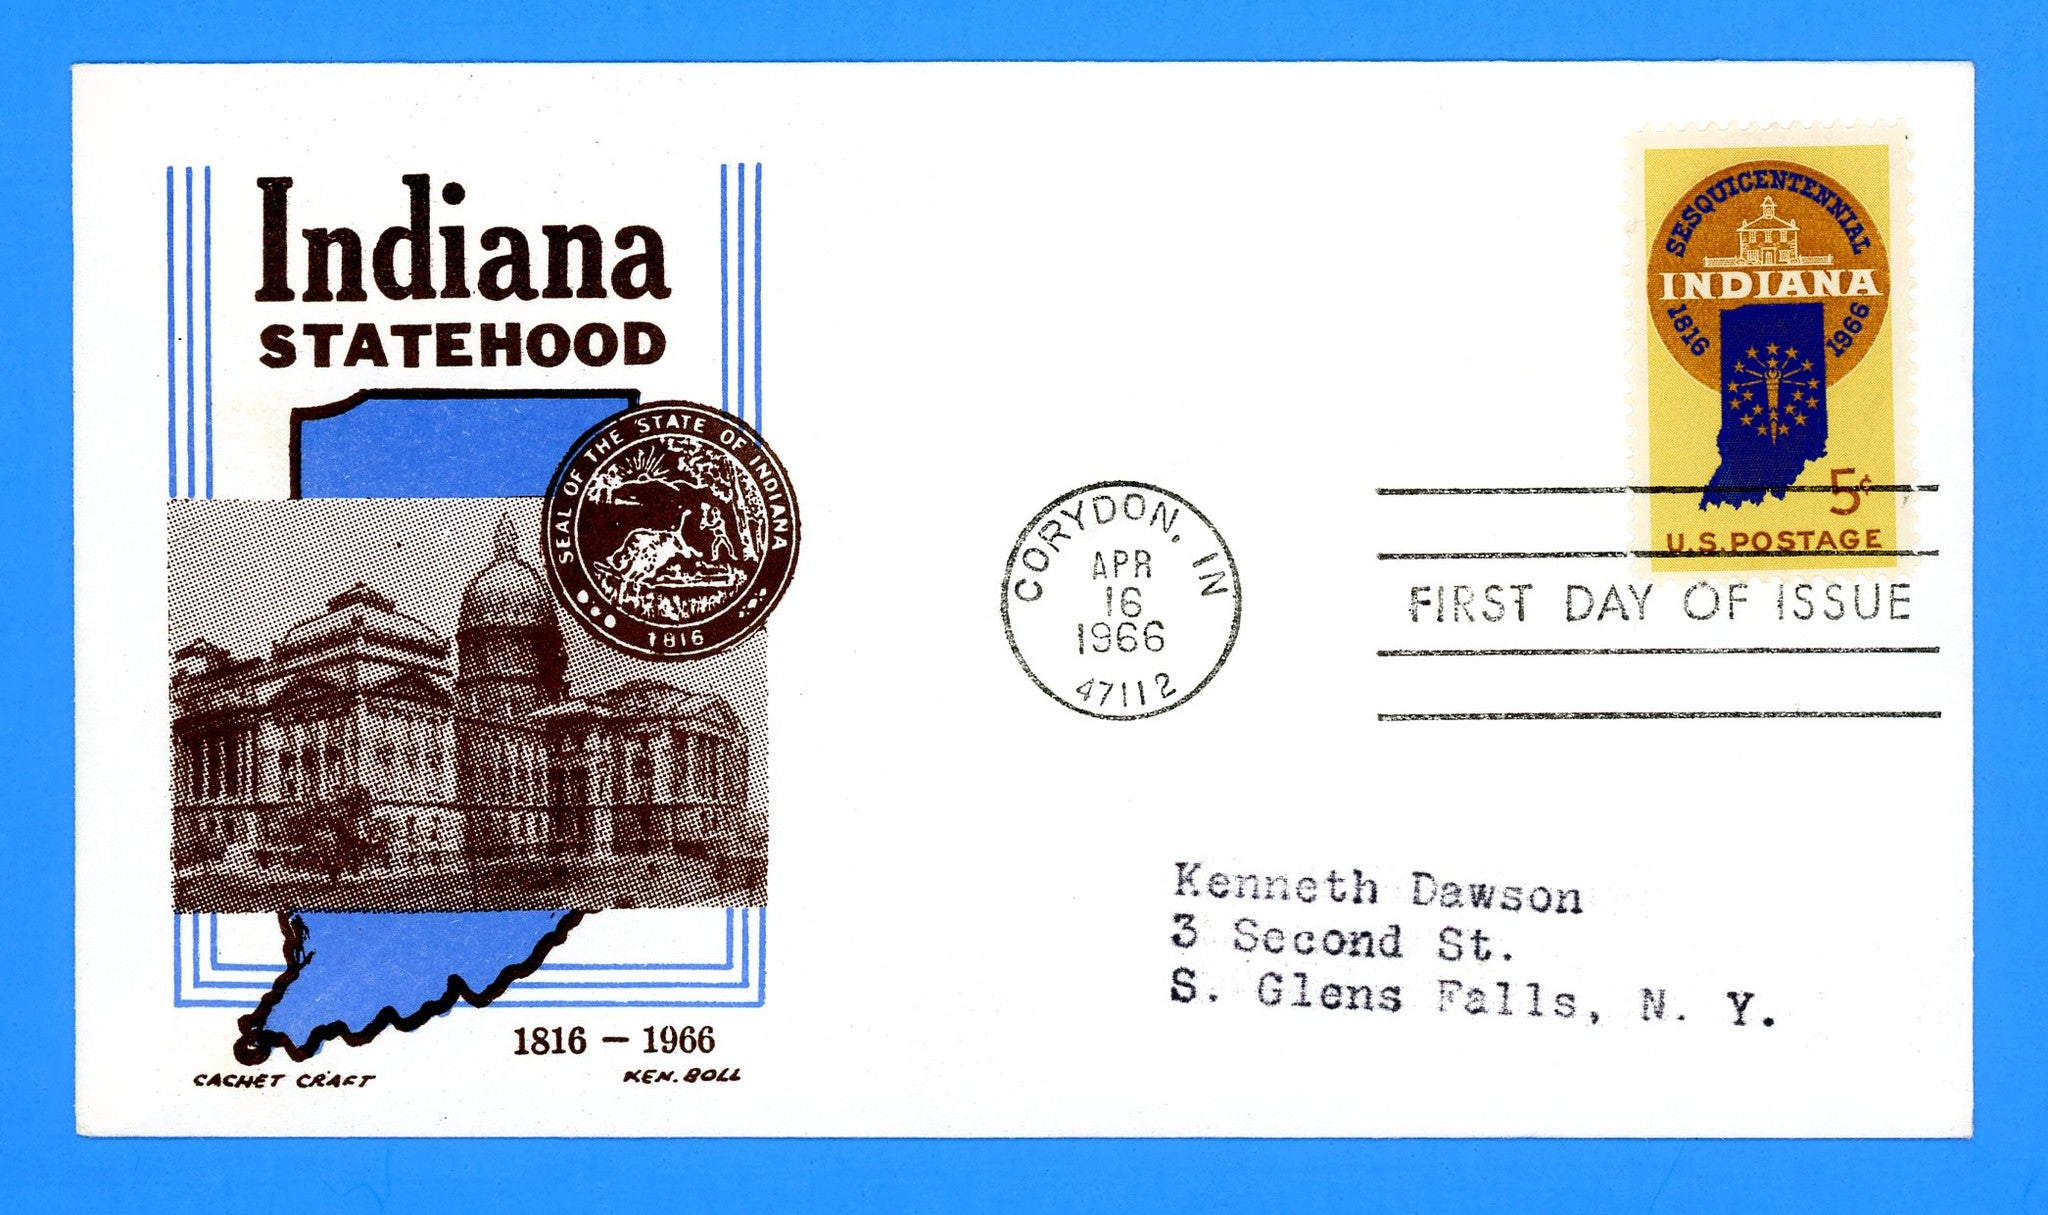 Scott 1308 Indiana Sesquicentennial First Day Cover by Cachet Craft/Boll